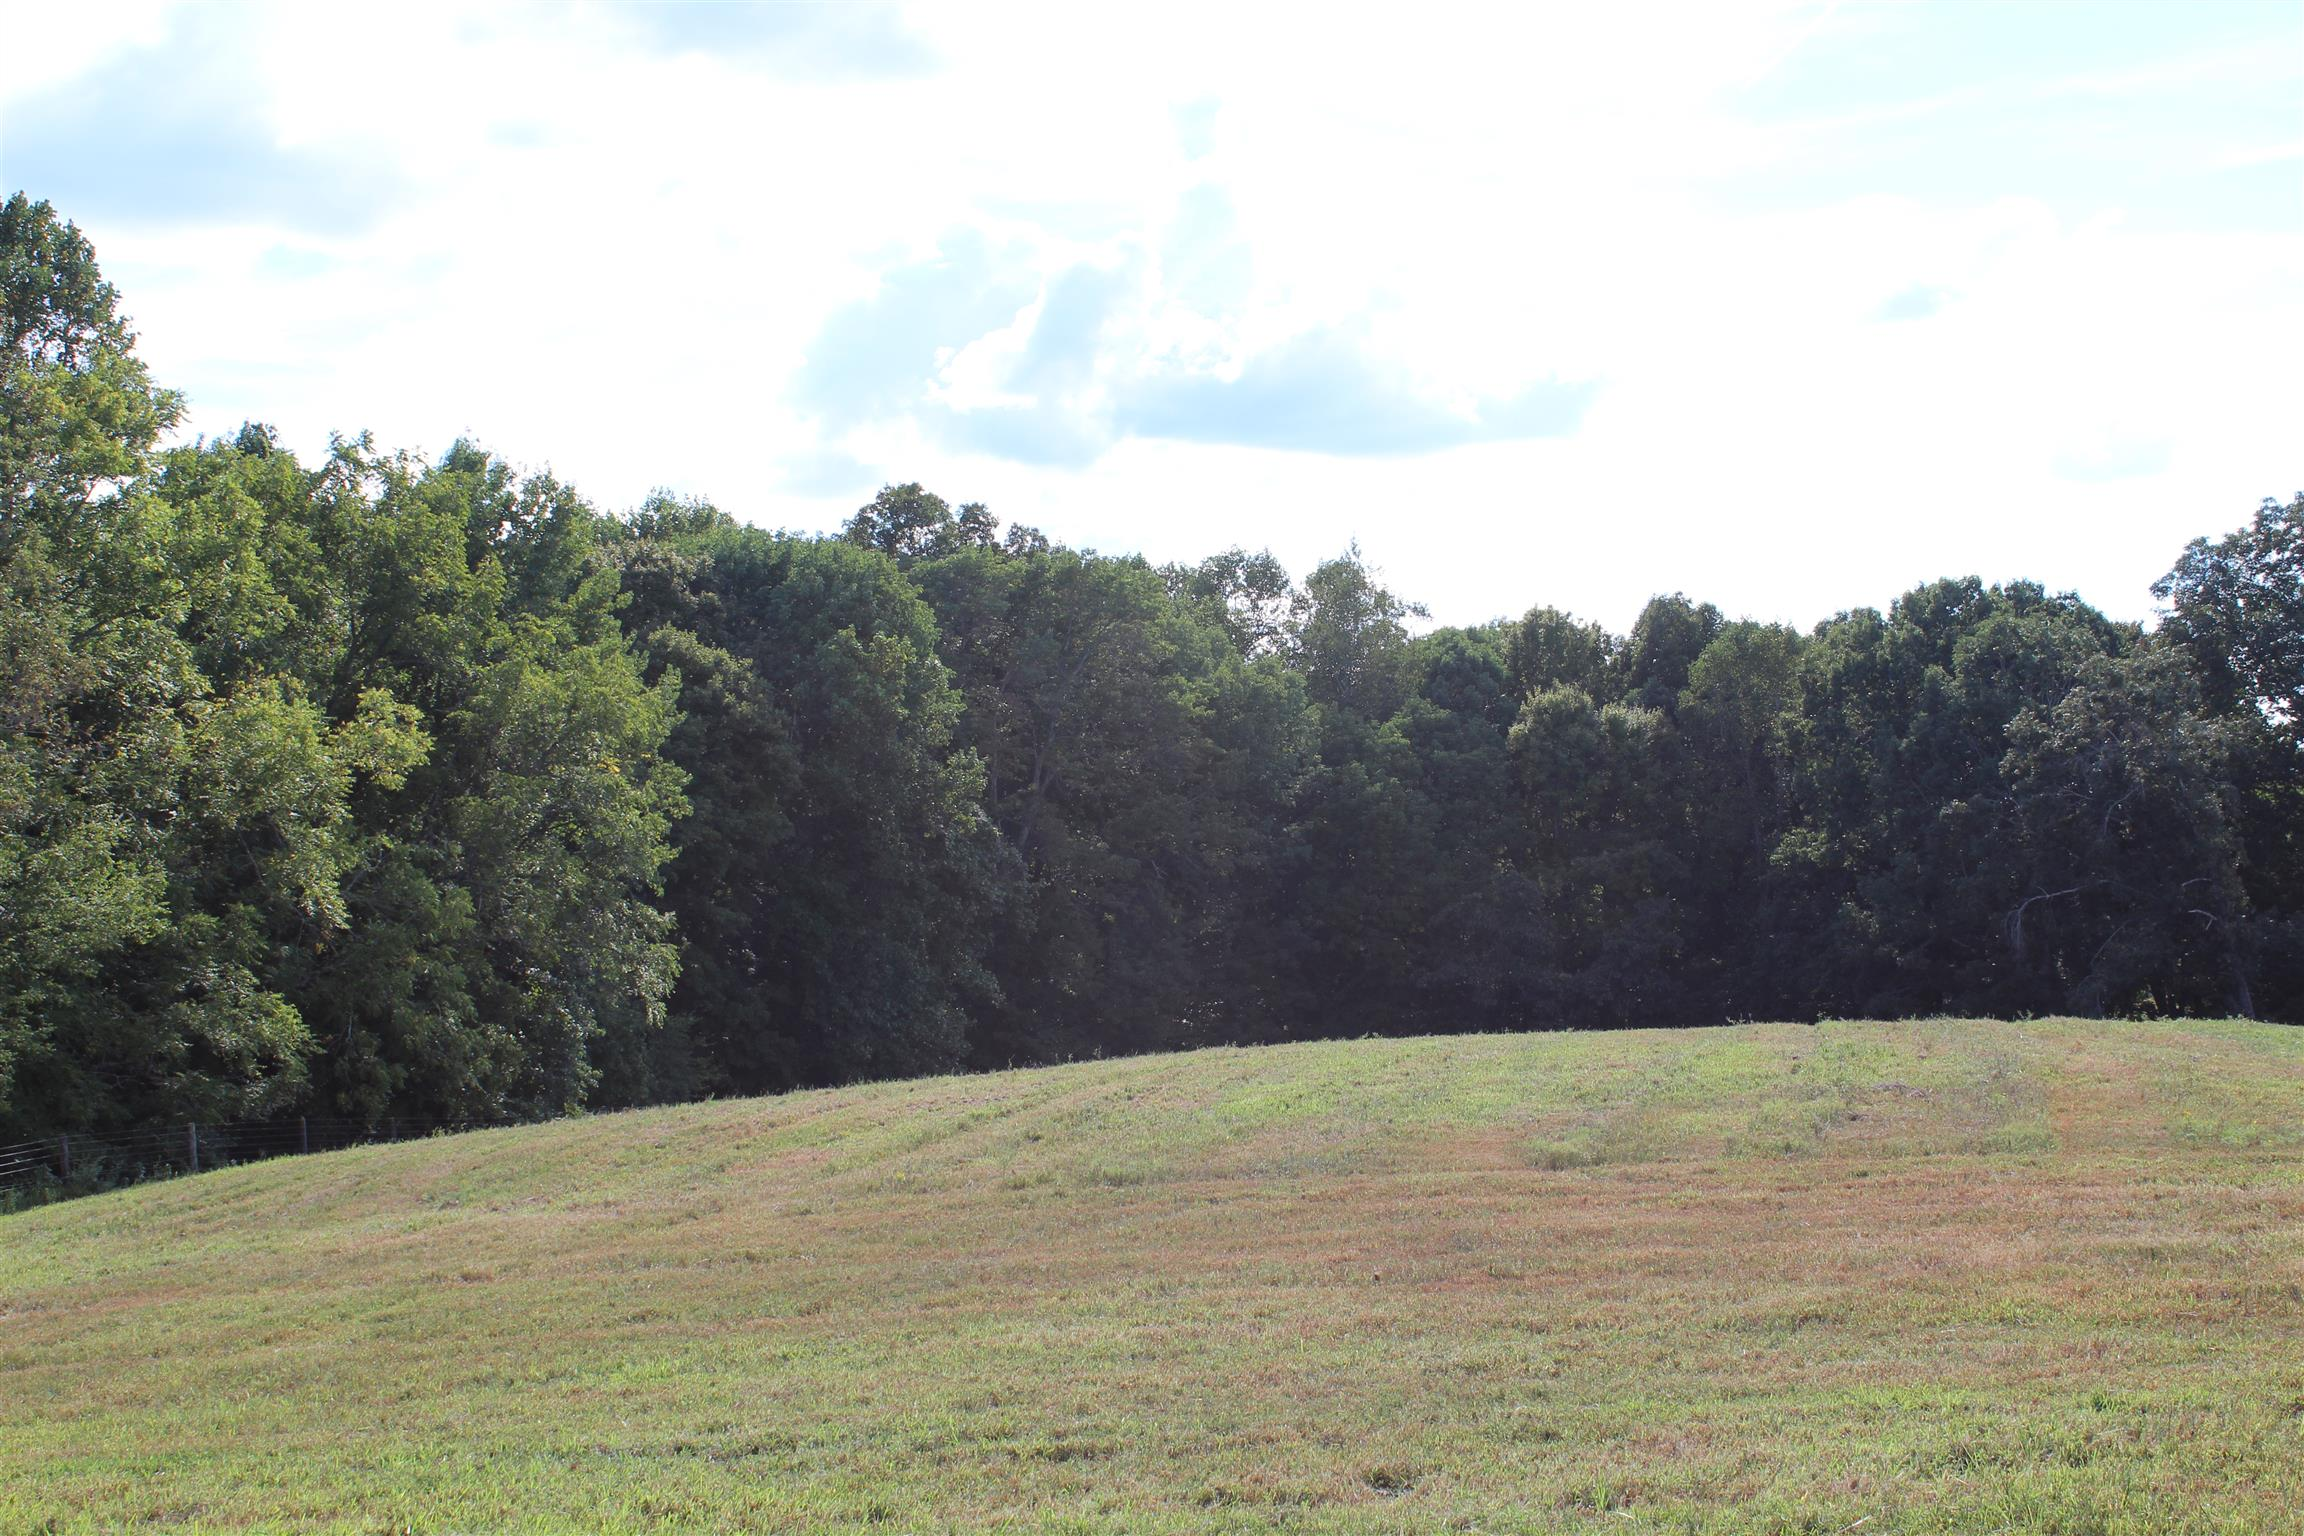 4 Hickory Point Rd (Lot 4), Clarksville, TN 37043 - Clarksville, TN real estate listing